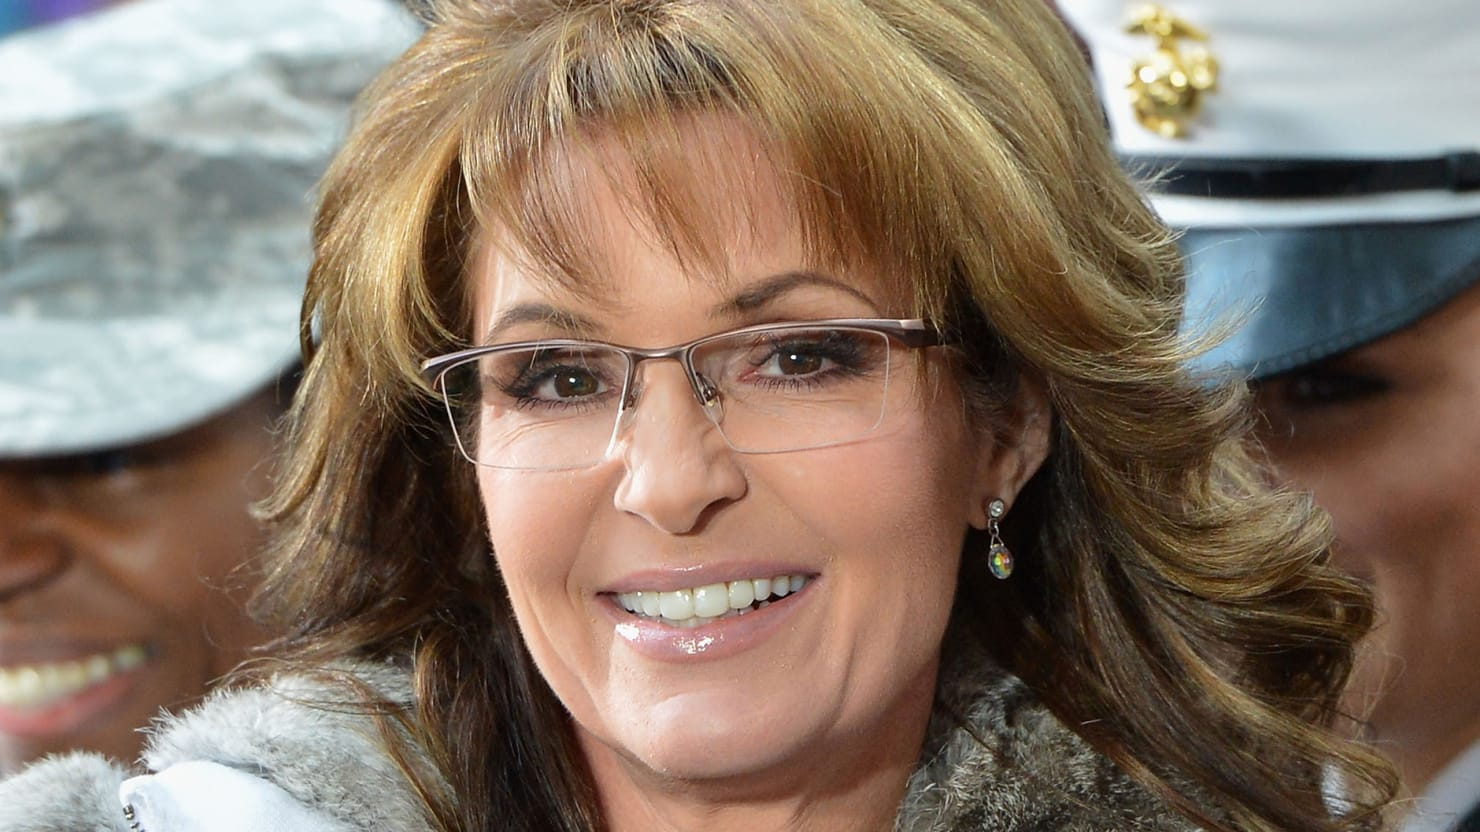 images-hot-sarah-palin-glamour-pictures-lesbain-nude